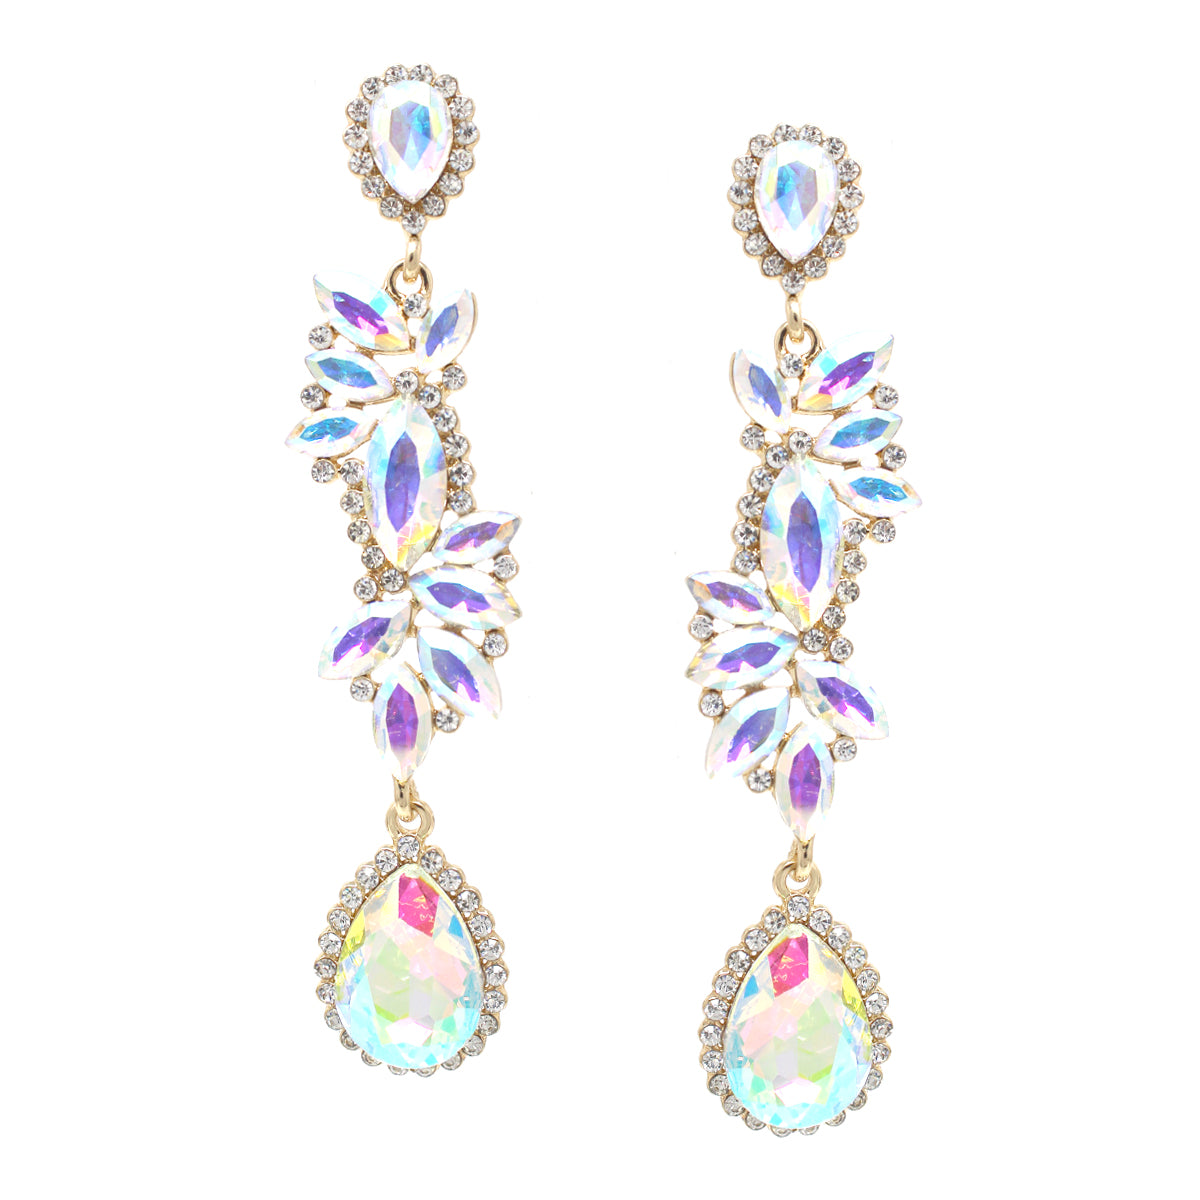 Marquise Stone Cluster With Teardrop Statement Earrings